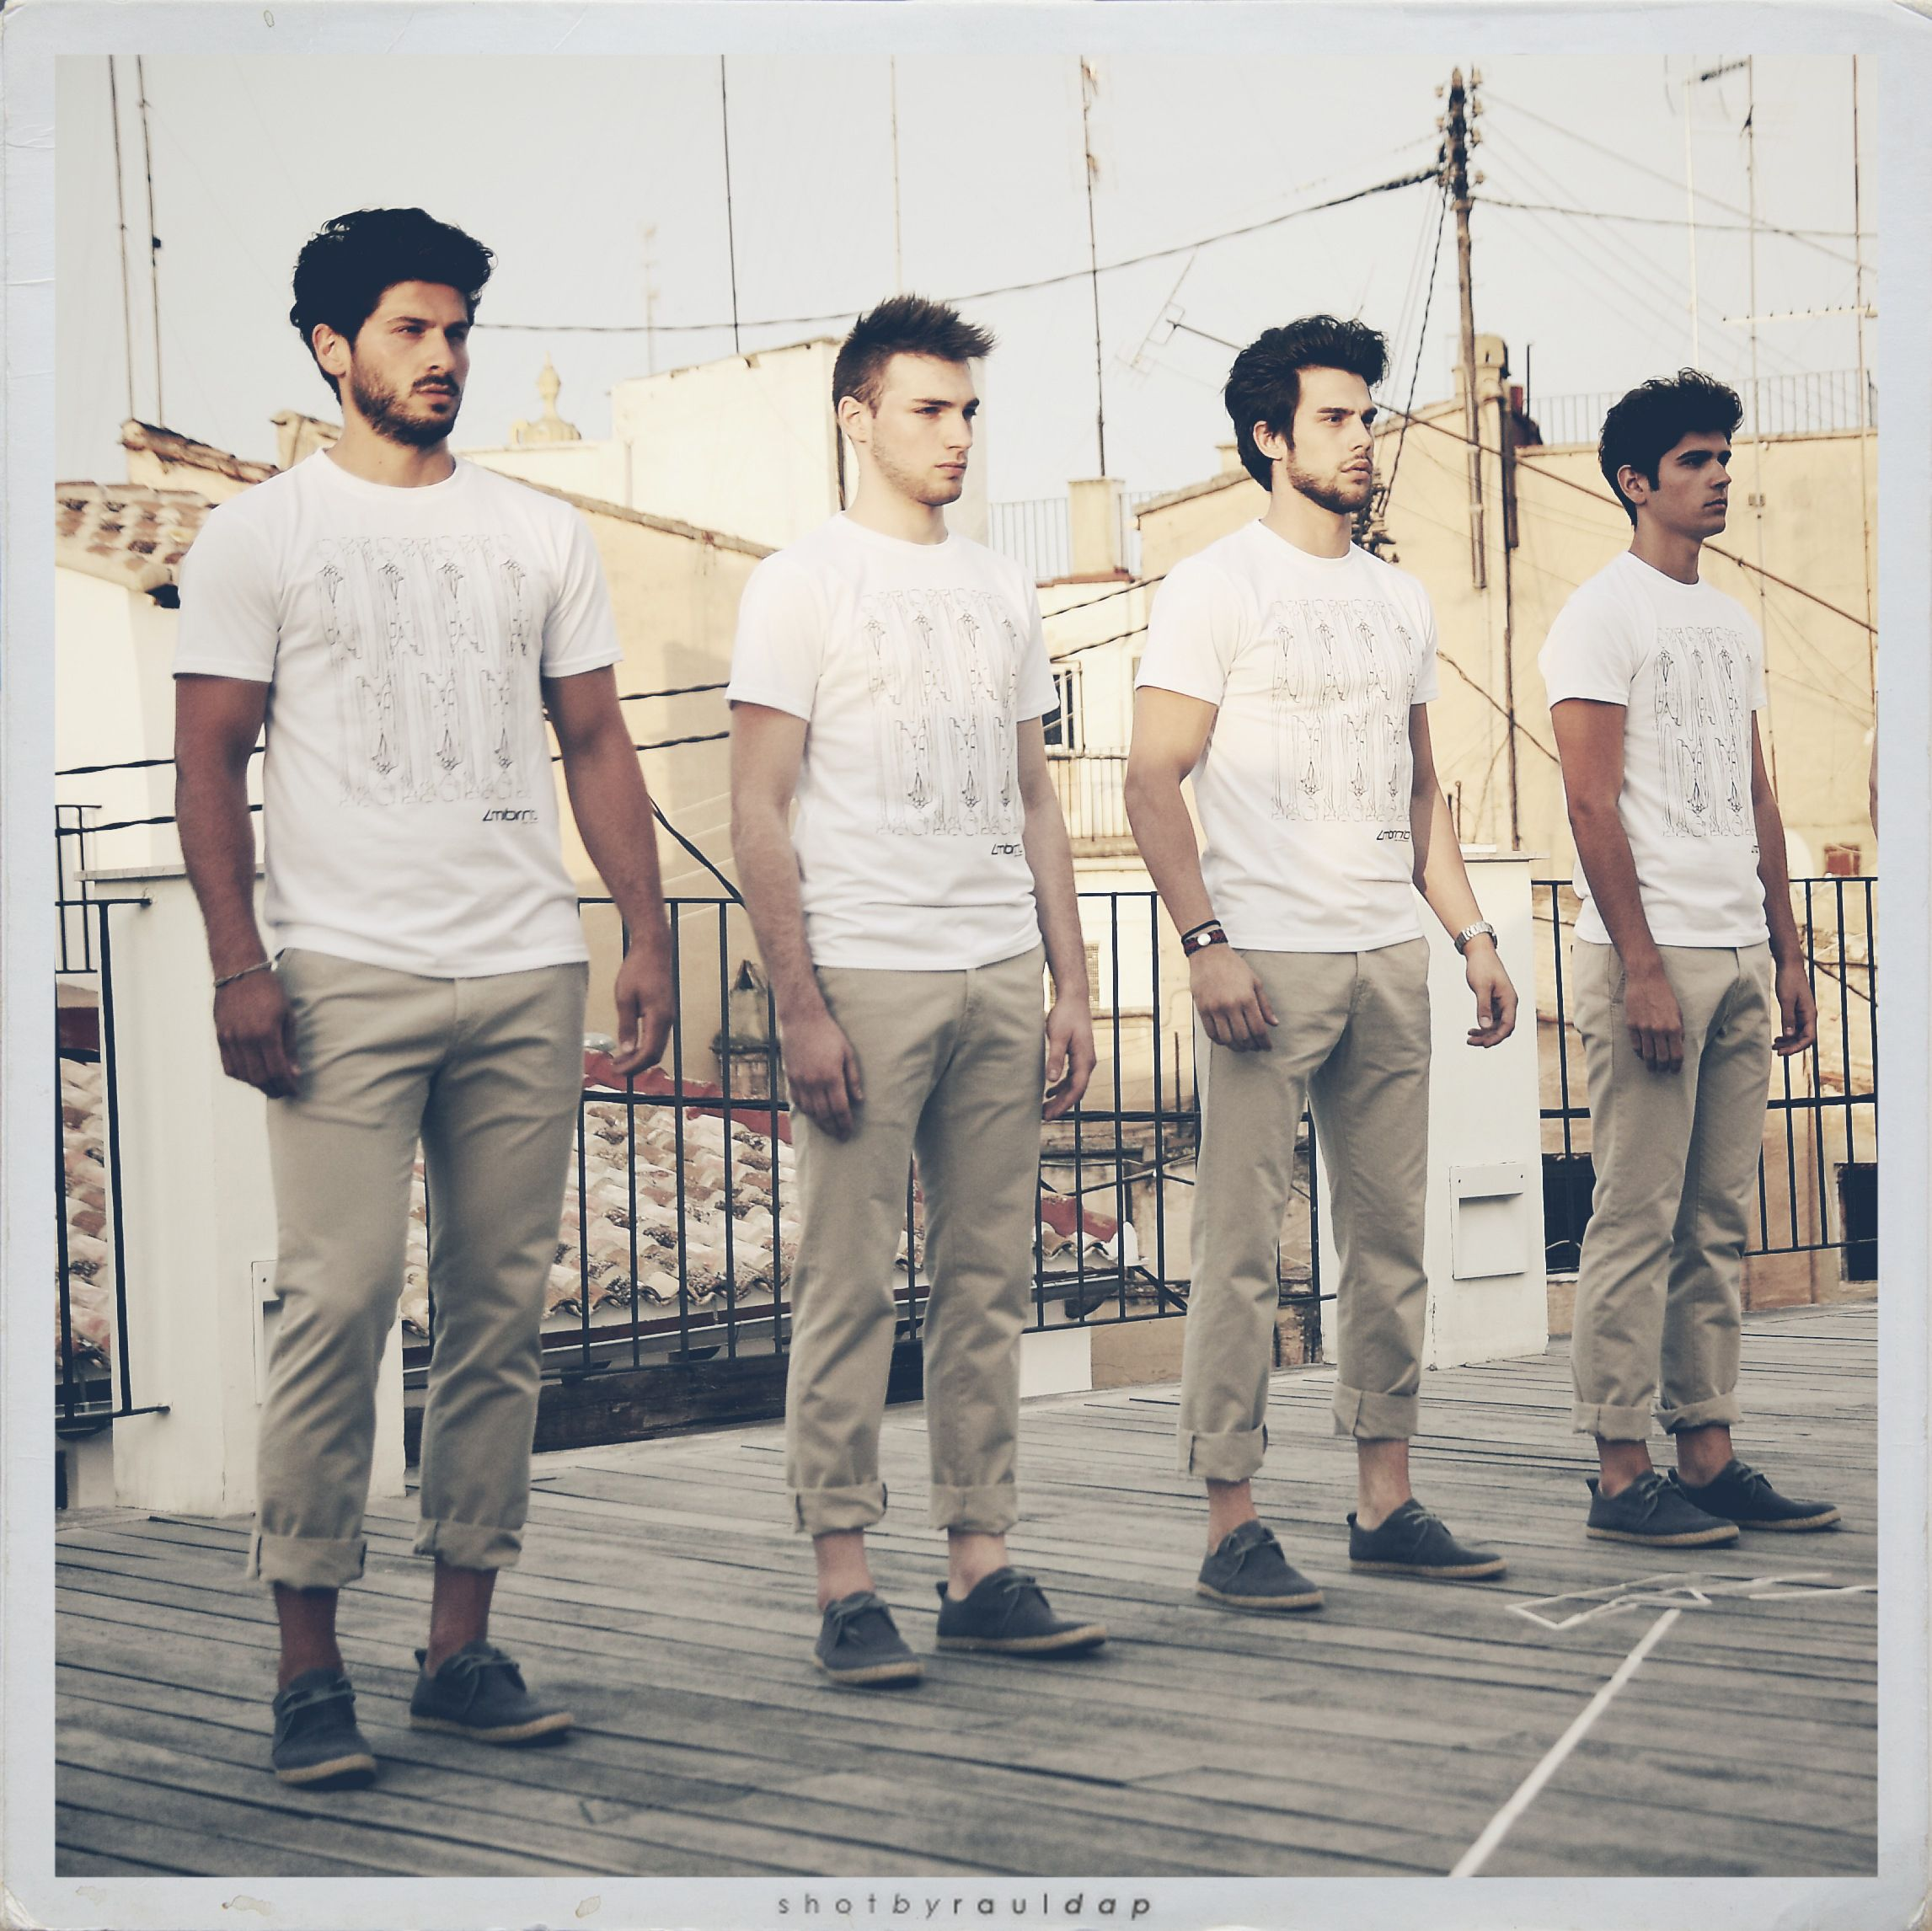 t-shirt and troussers Zambrano summertime collection